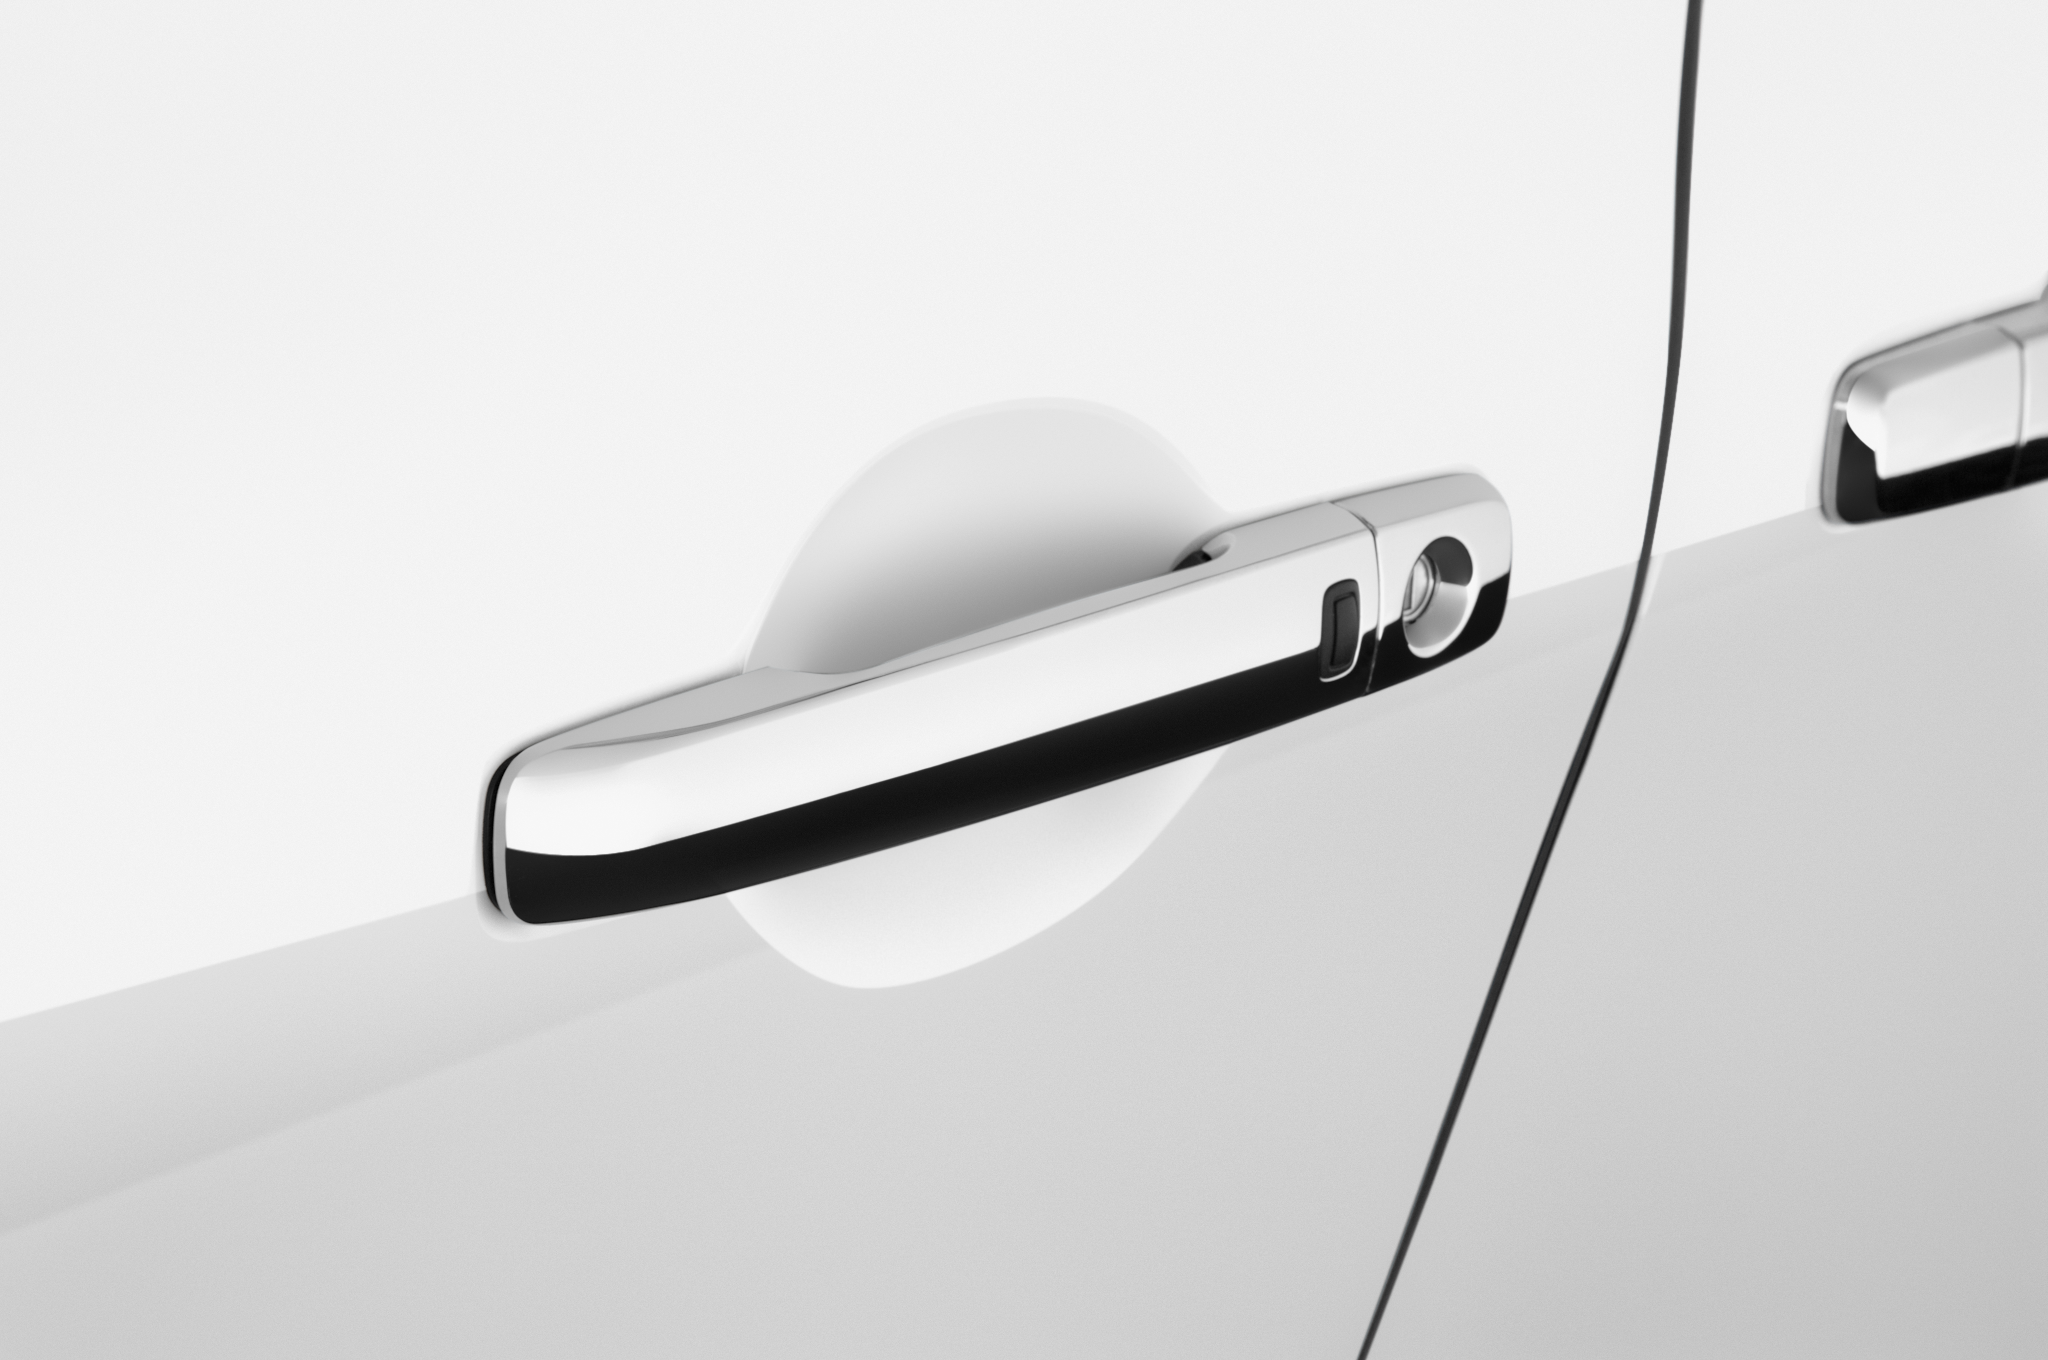 Stunning Nissan Murano Door Handle Images - Home Decorating Ideas ...